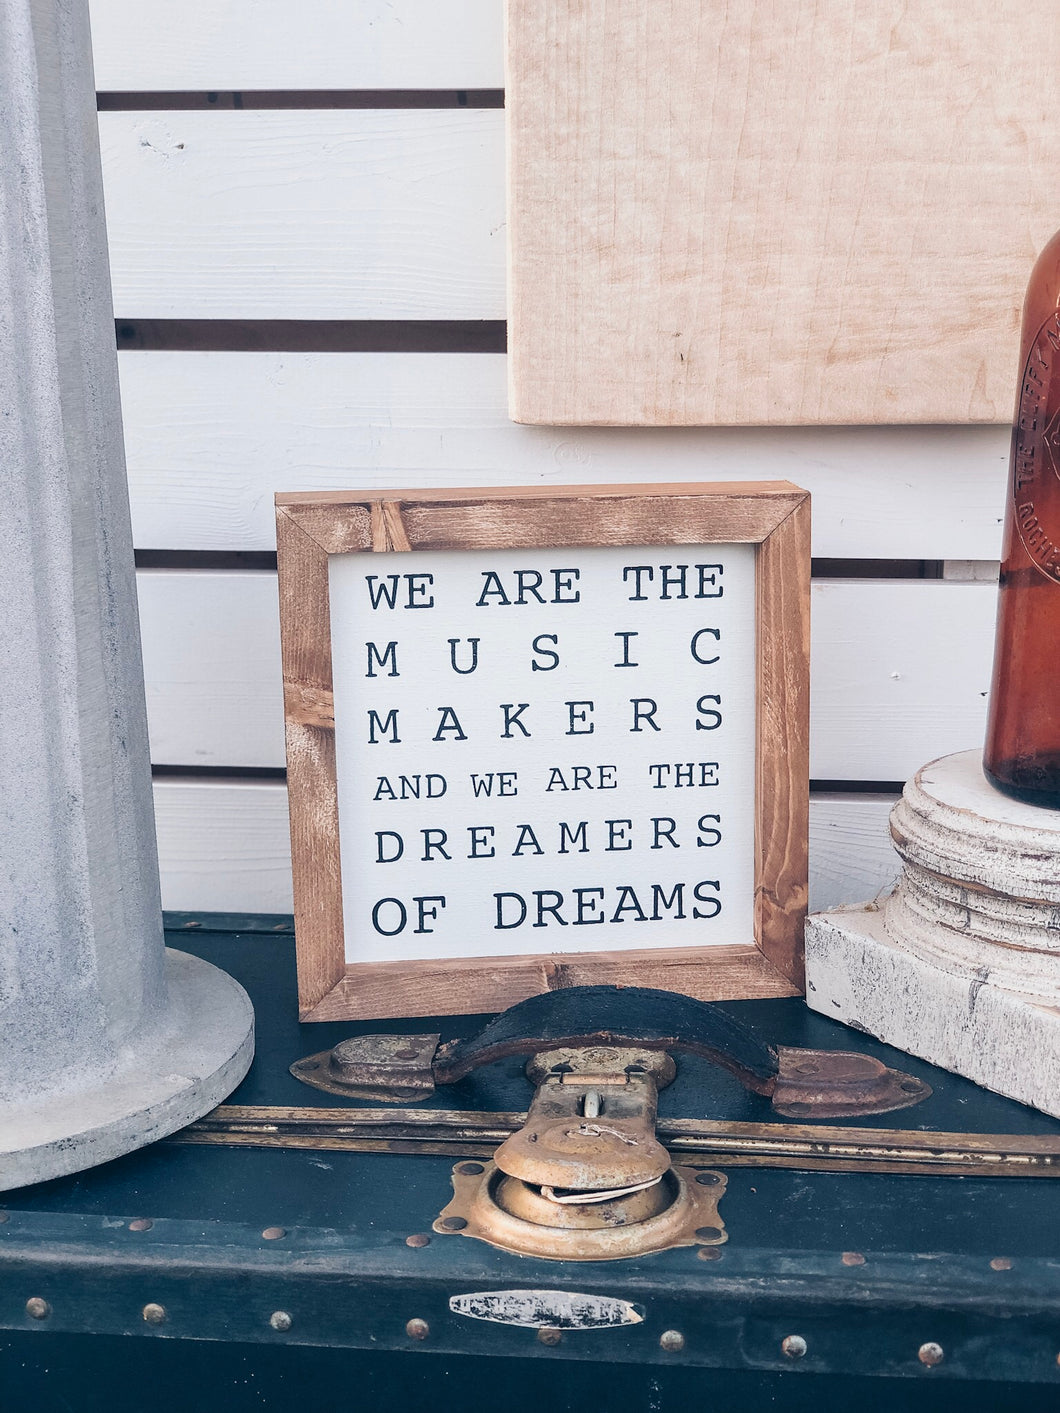 WE ARE THE MUSIC MAKERS AND WE ARE THE DREAMERS OF DREAMS